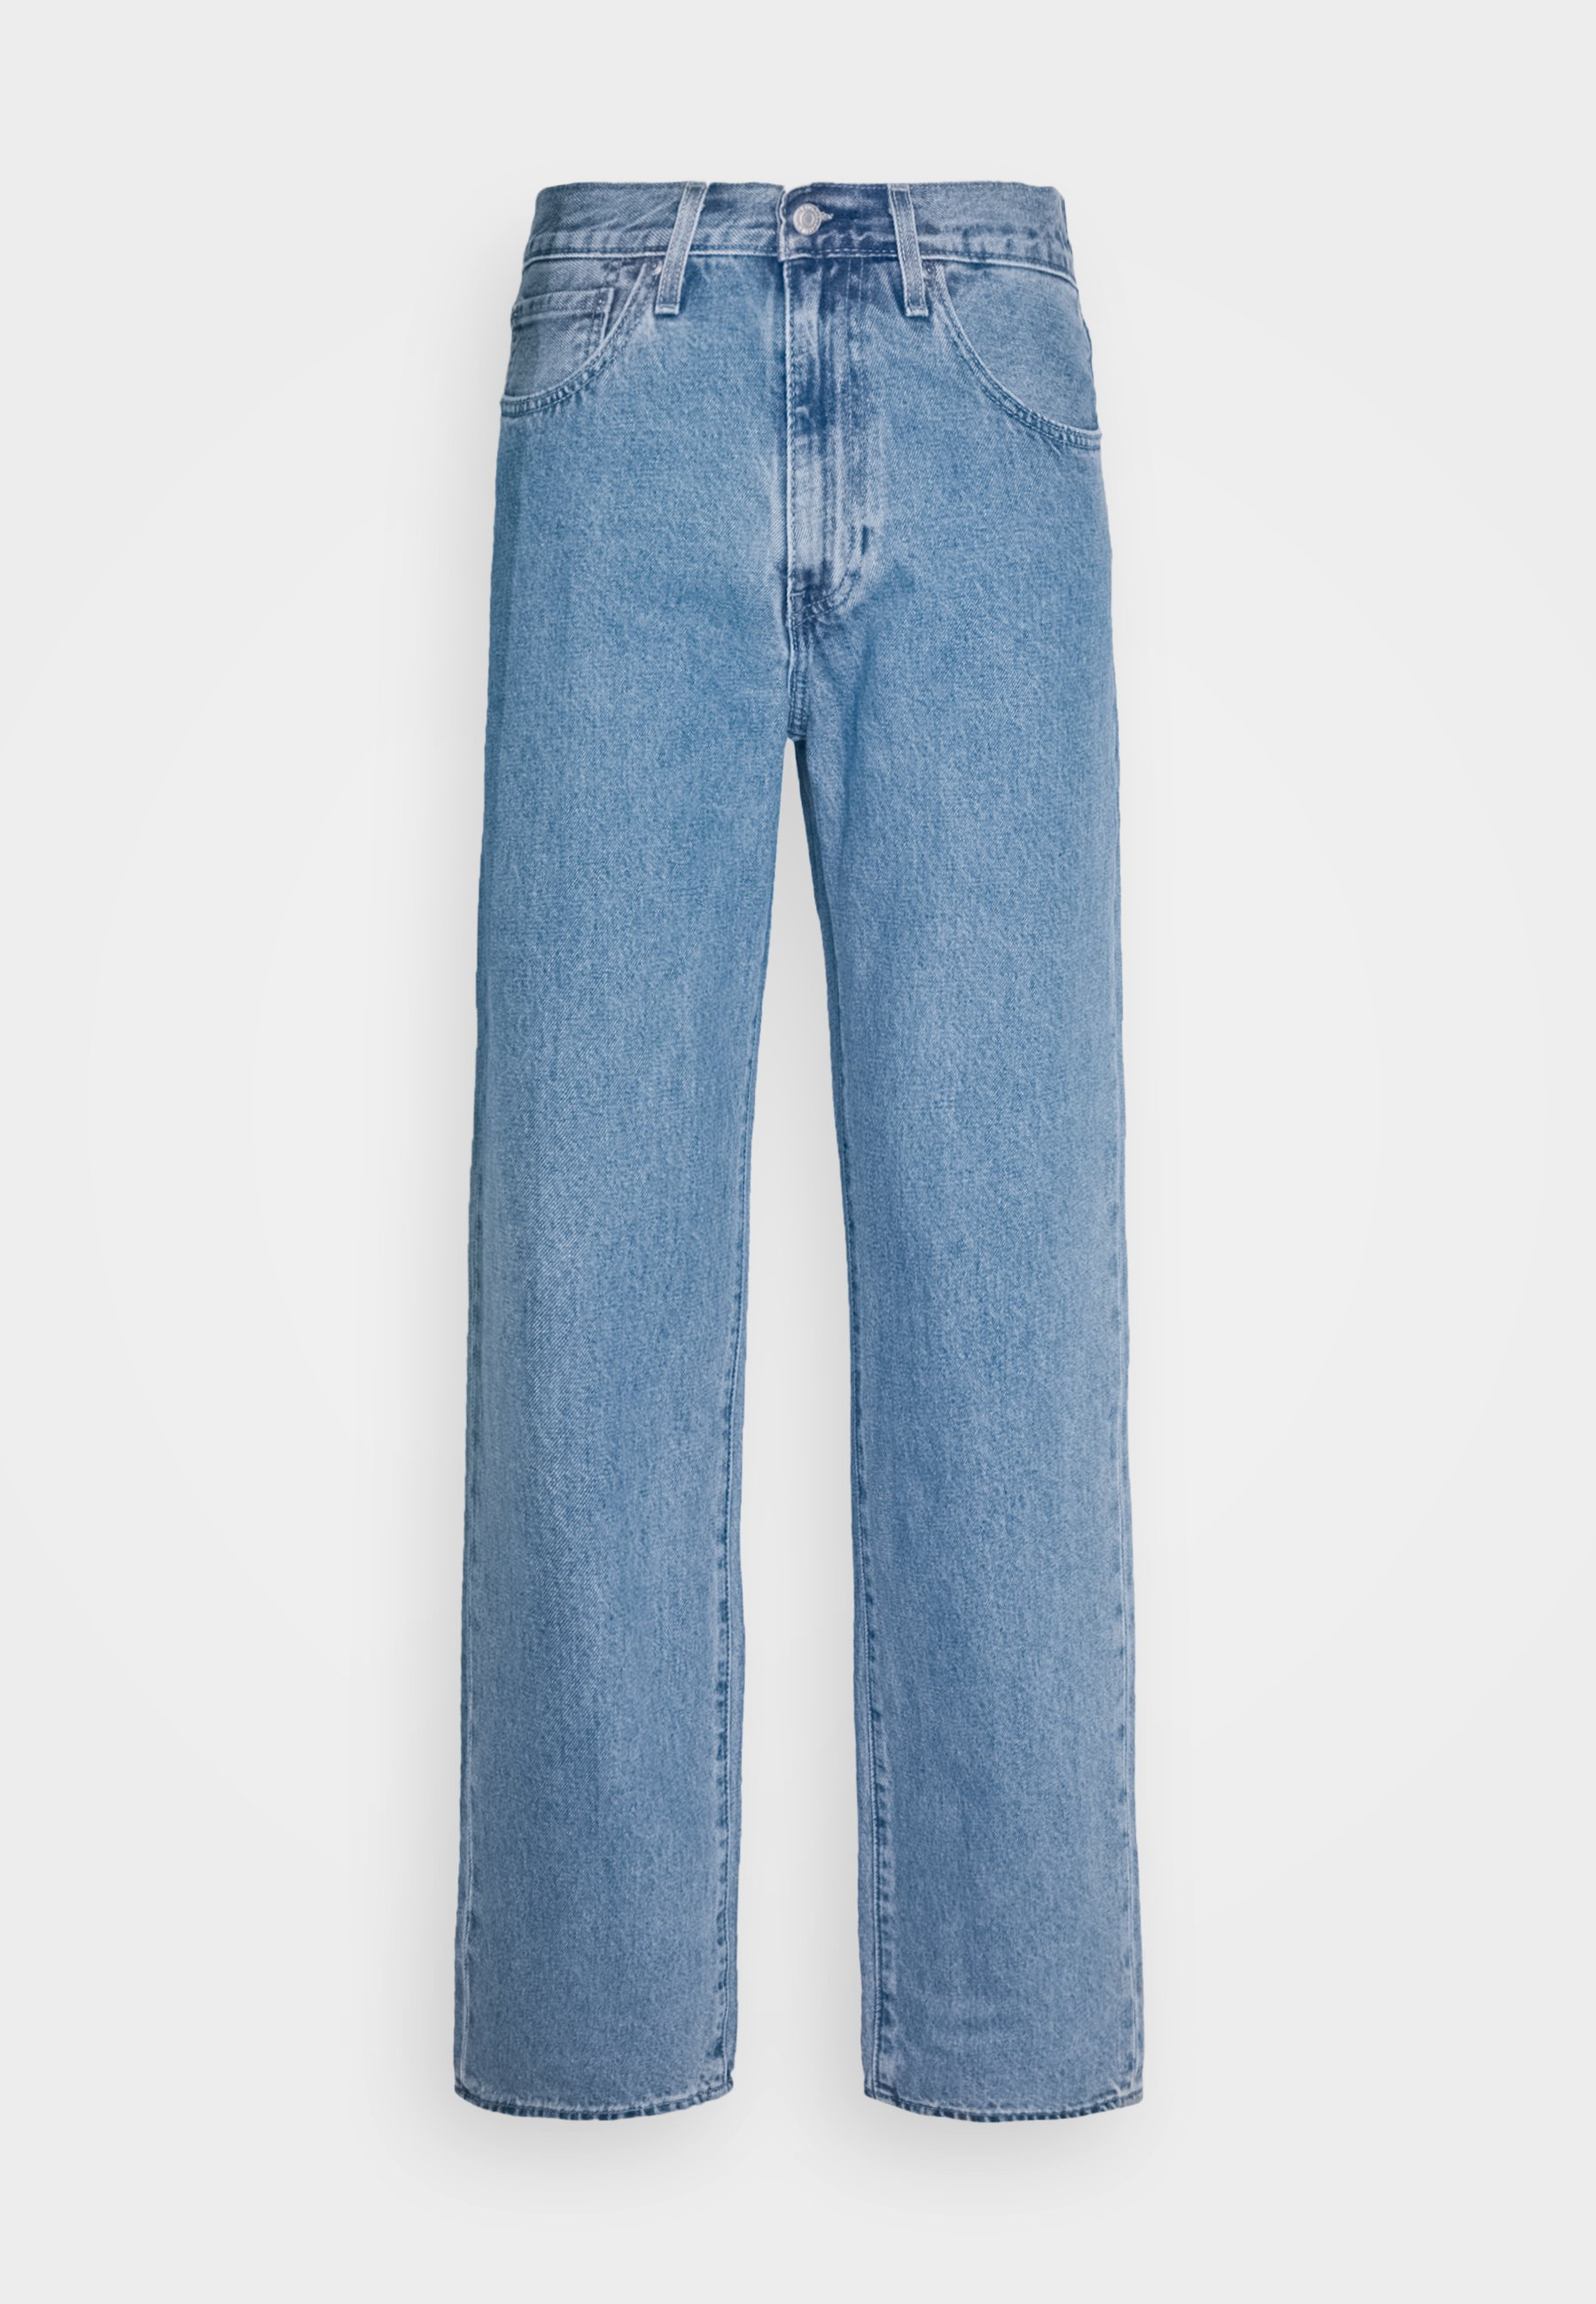 STAY LOOSE Jeans relaxed fit light blue denim